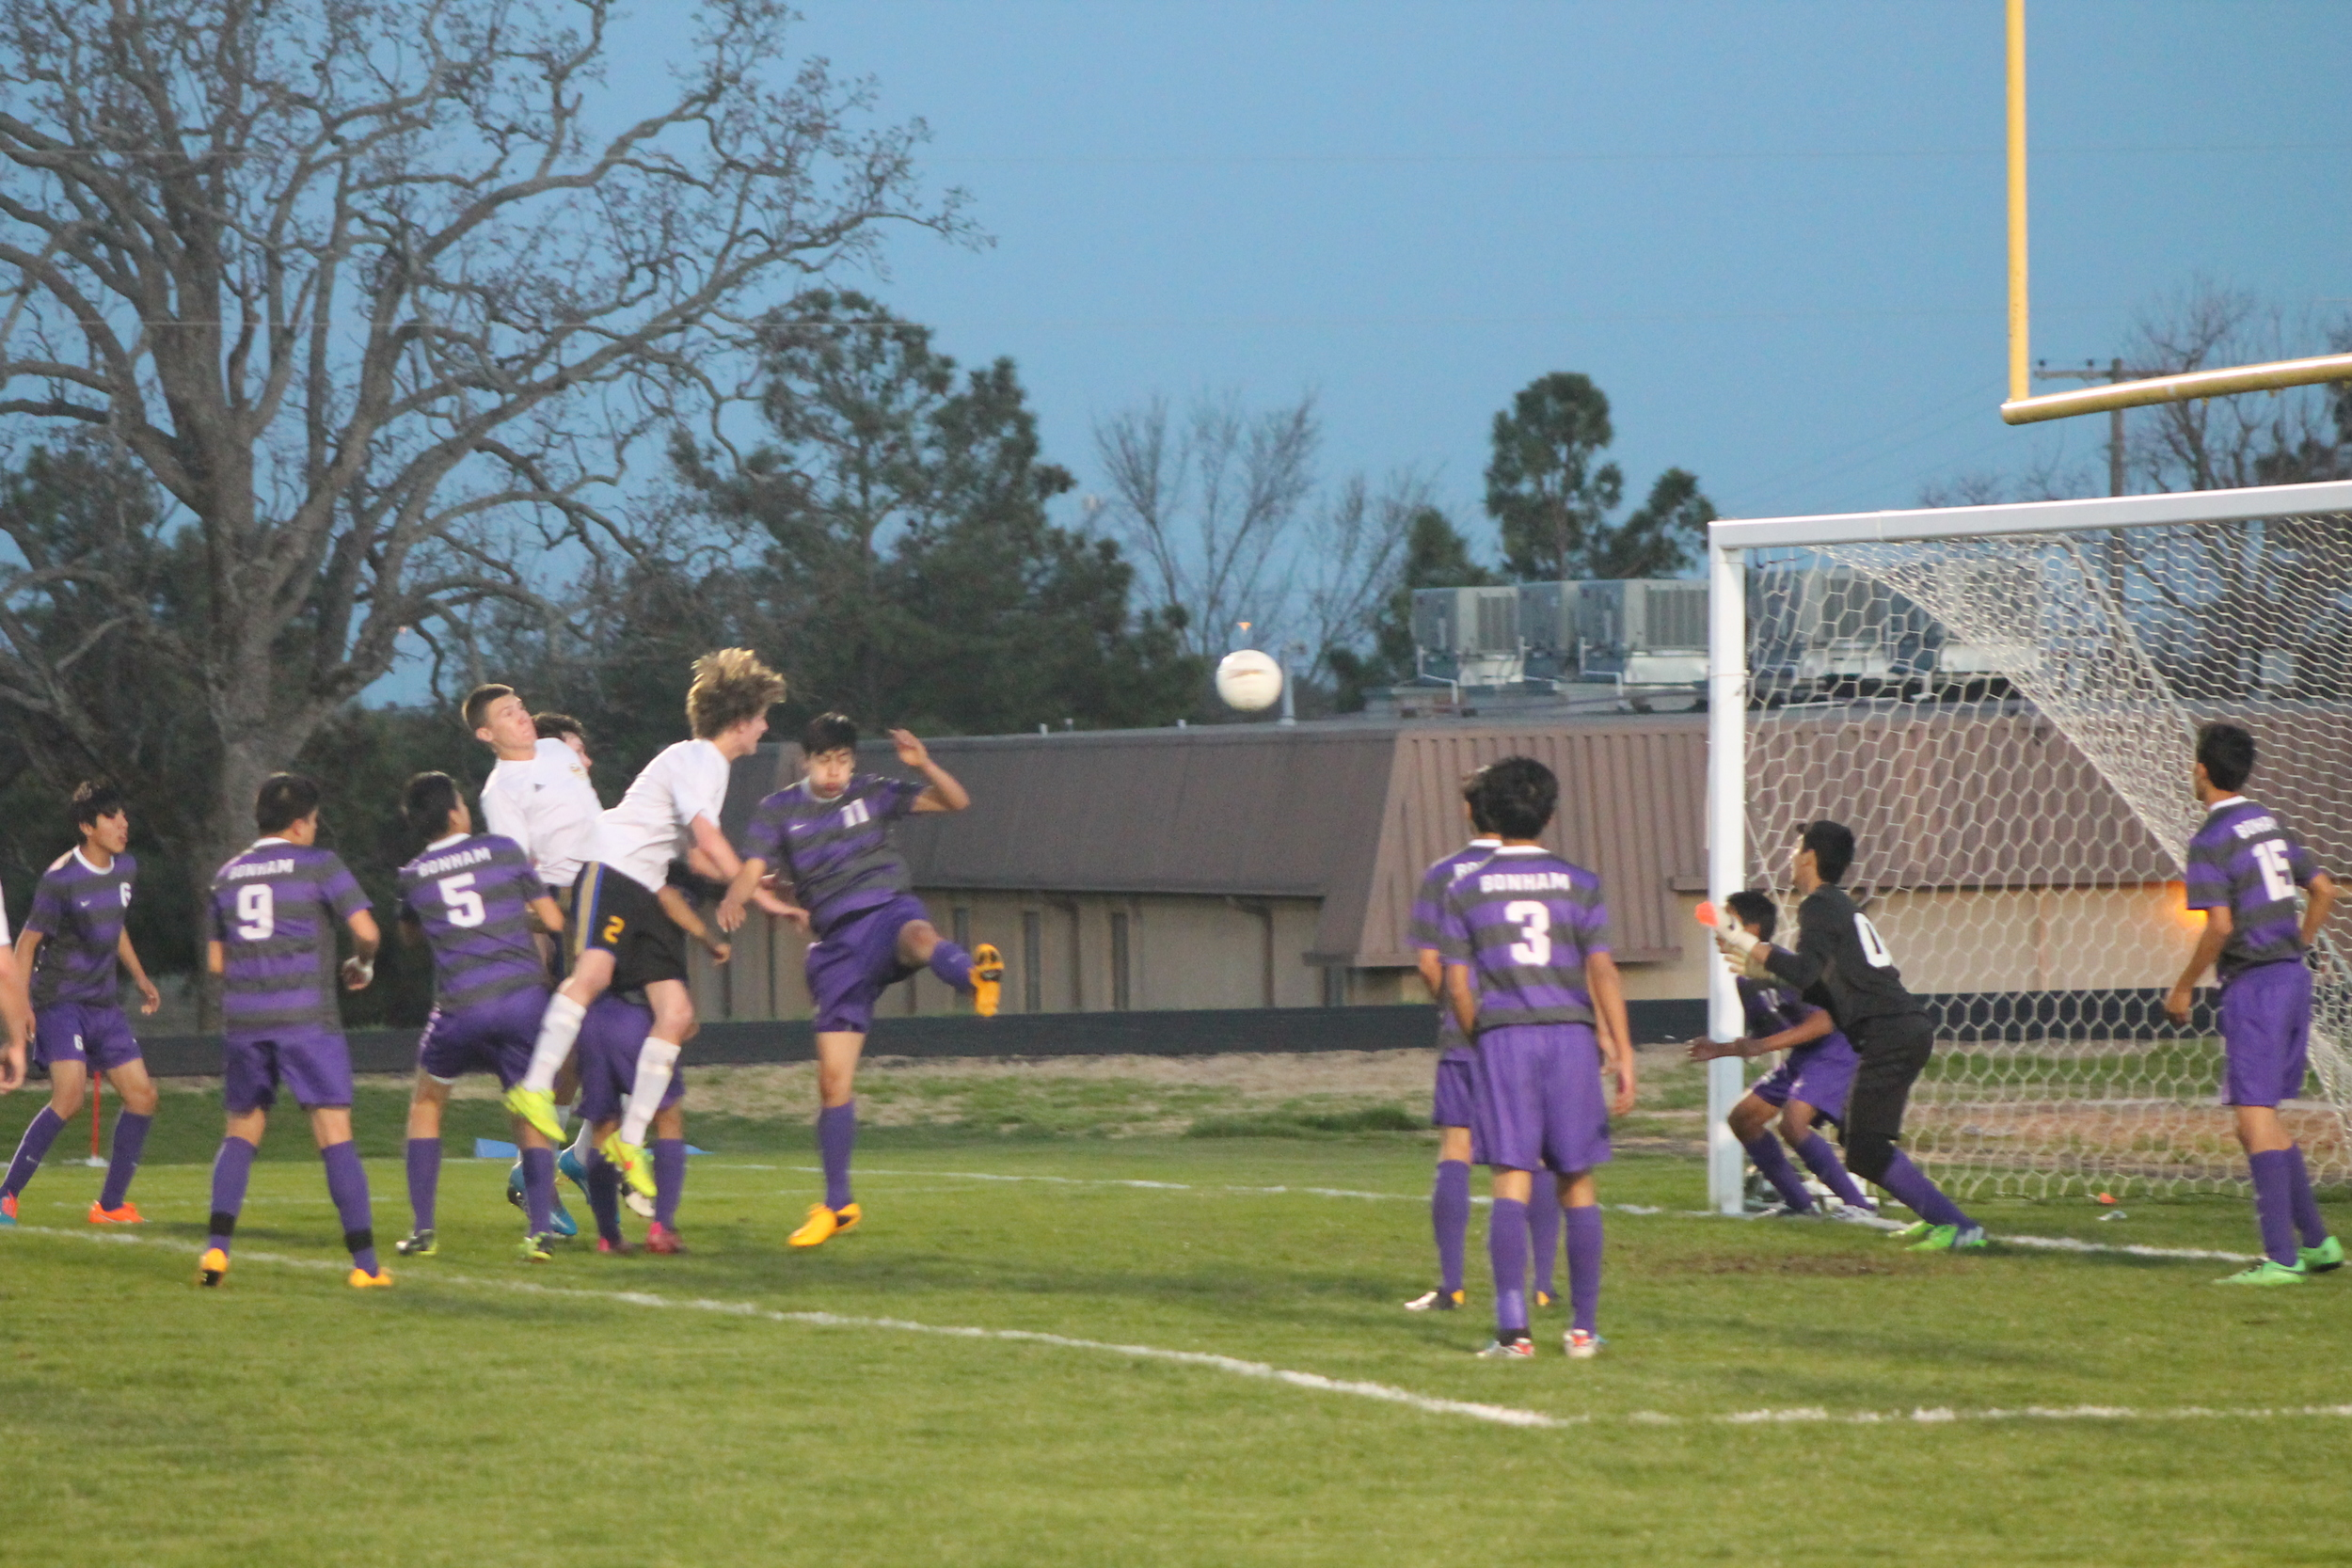 (Photo by Jared Routon) Hunter Loves attempts a header against Bonham